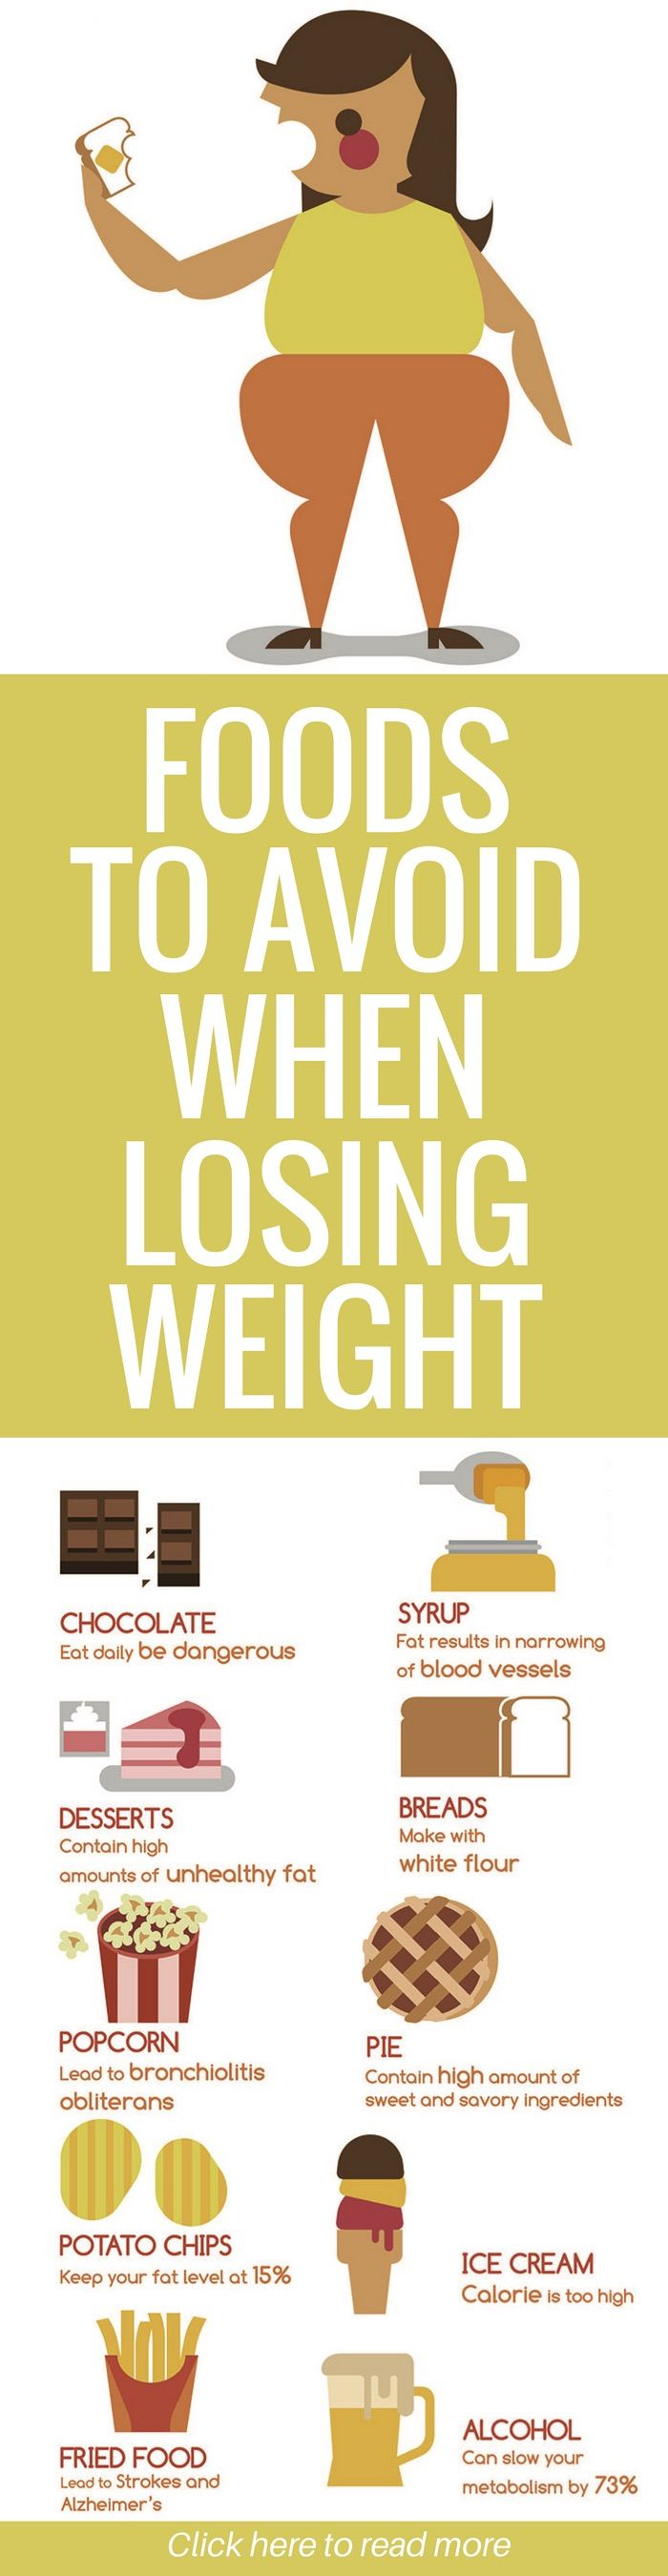 Lose weight after stopping mini pill photo 4